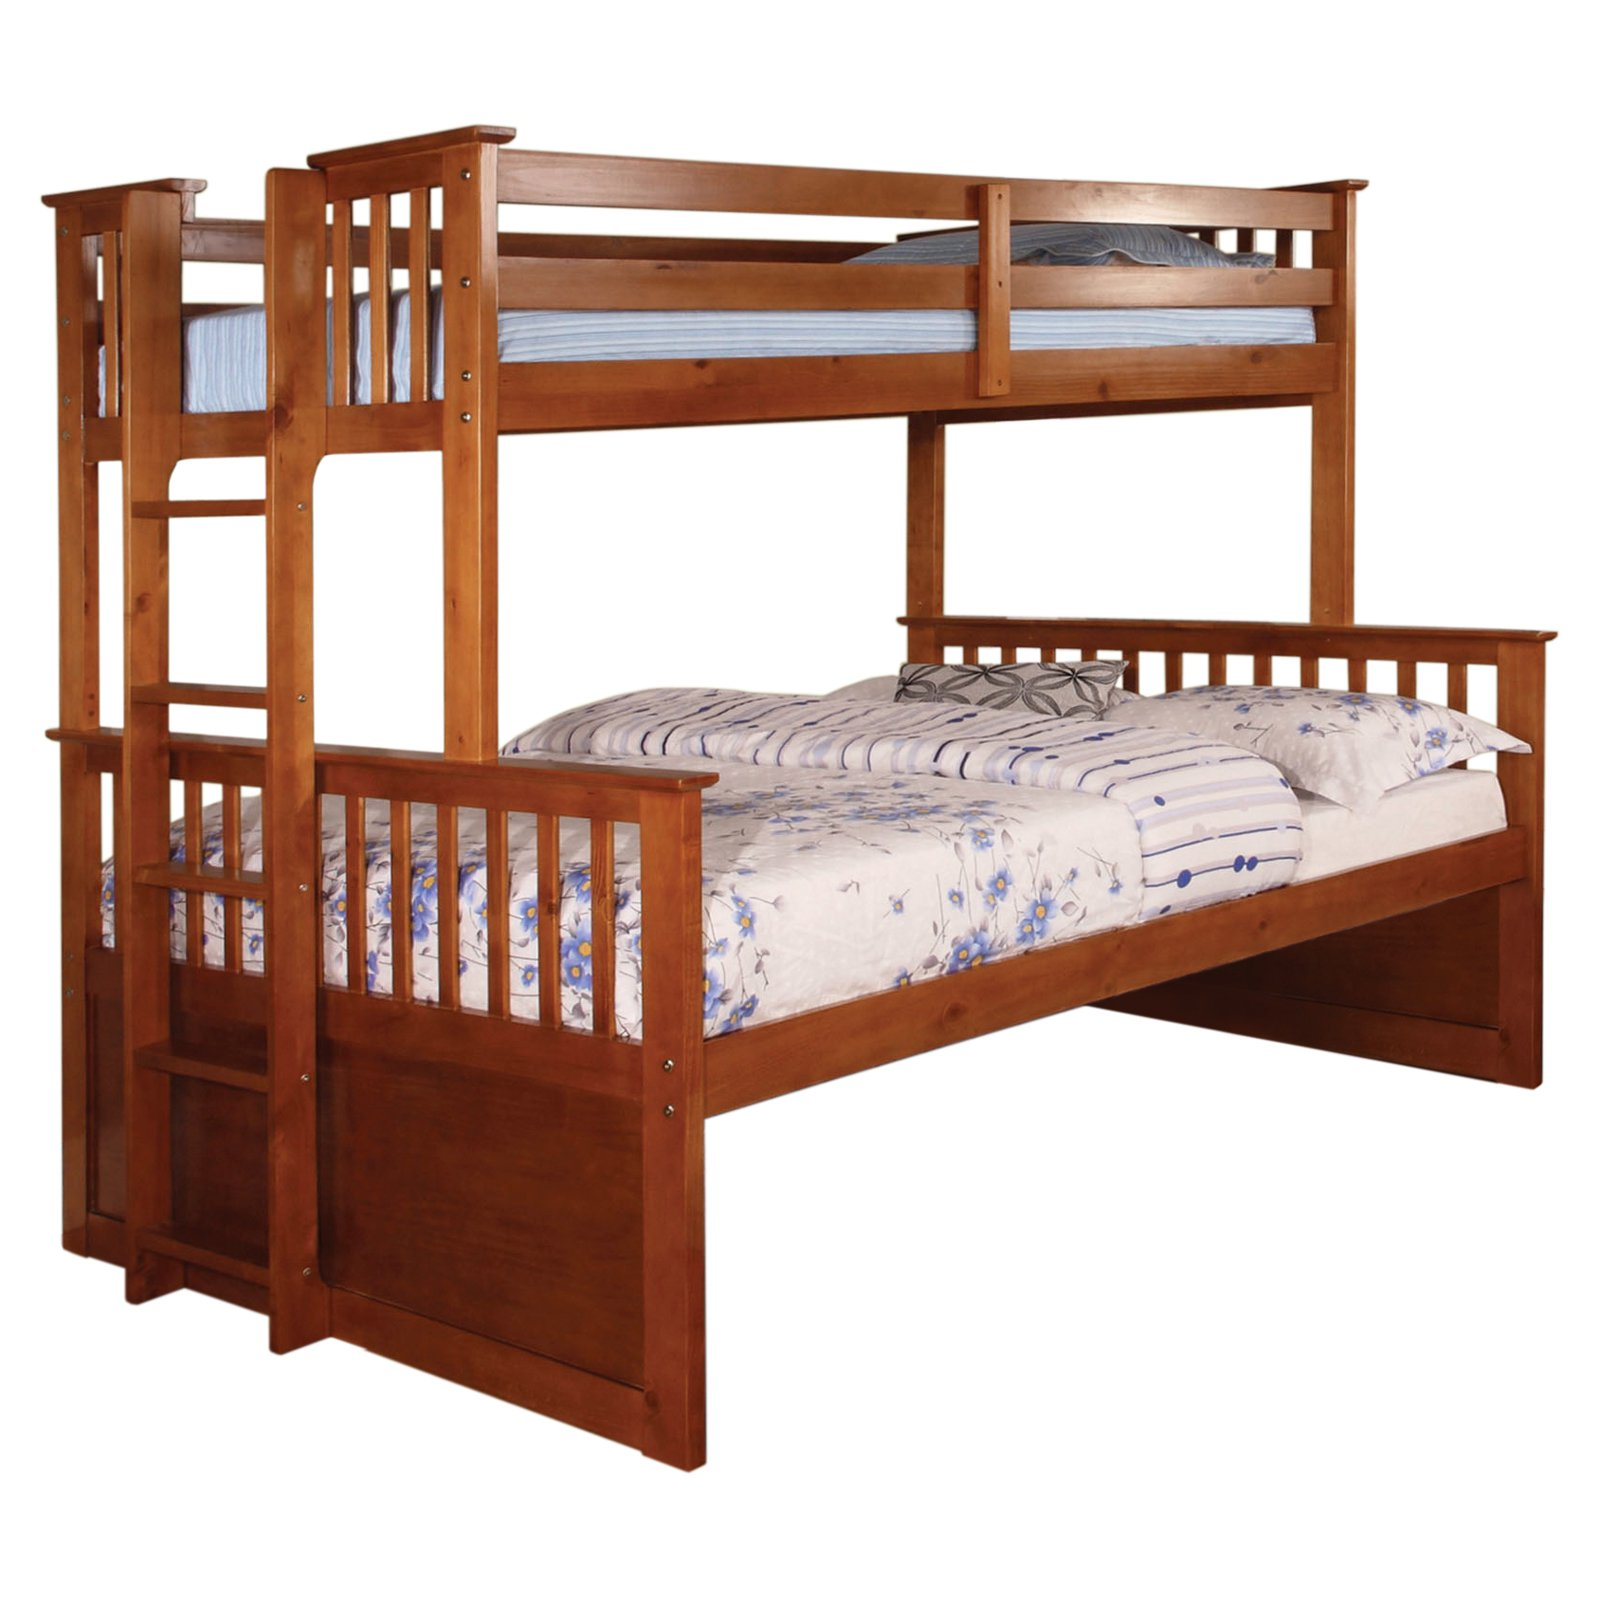 Furniture Of America Williams Twin Xl Over Queen Bunk Bed Walmart Com